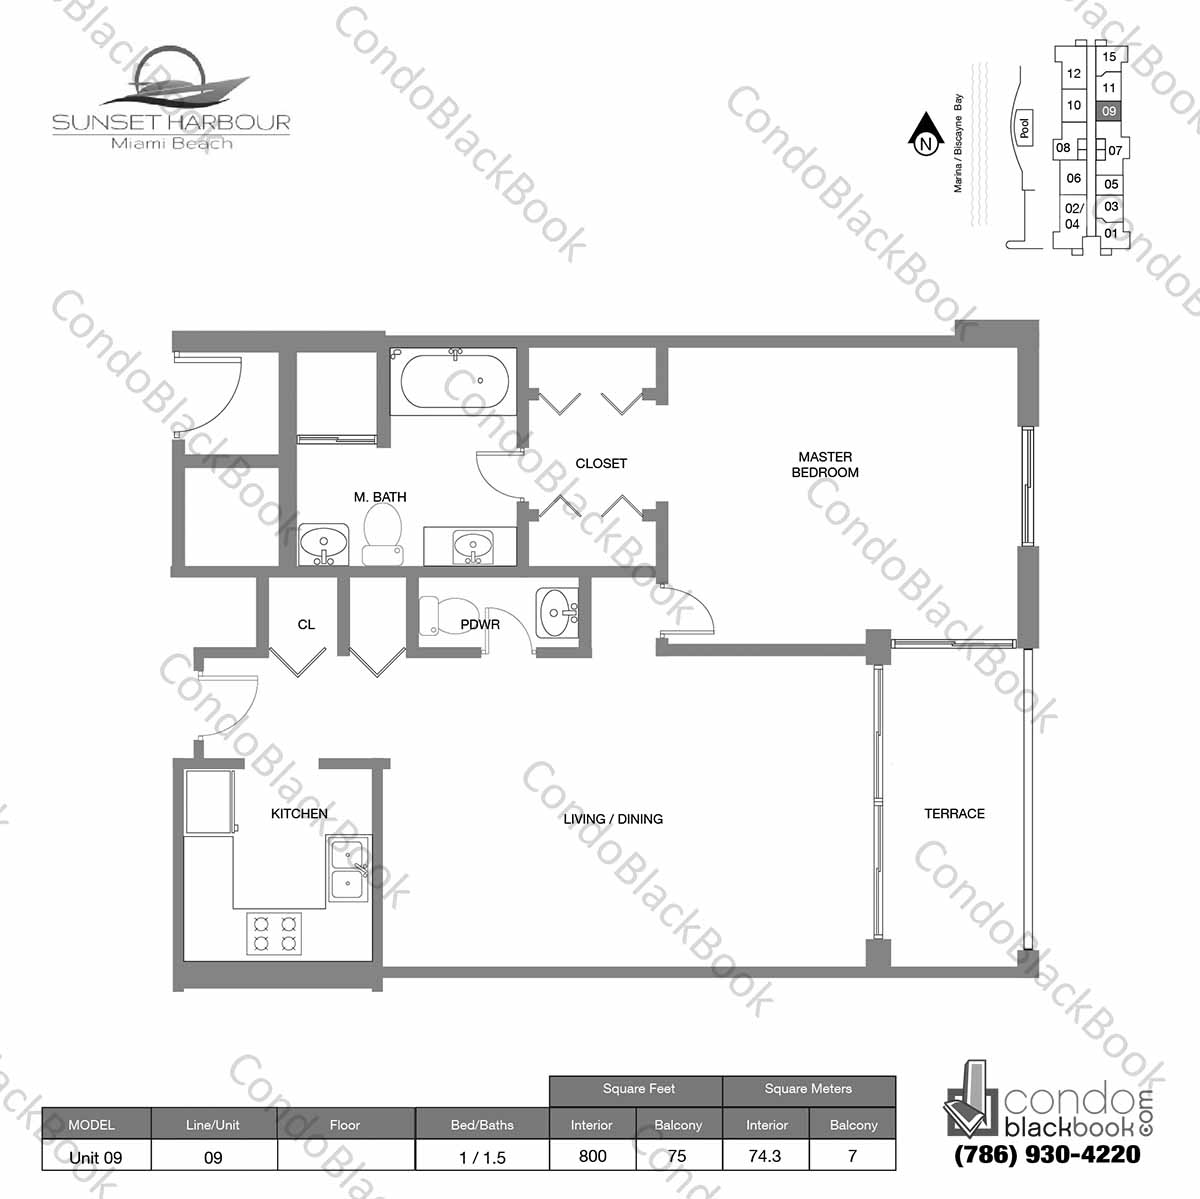 Floor plan for Sunset Harbour South Beach Miami Beach, model Unit 09, line 09S, 1  / 1.5 bedrooms, 800 sq ft